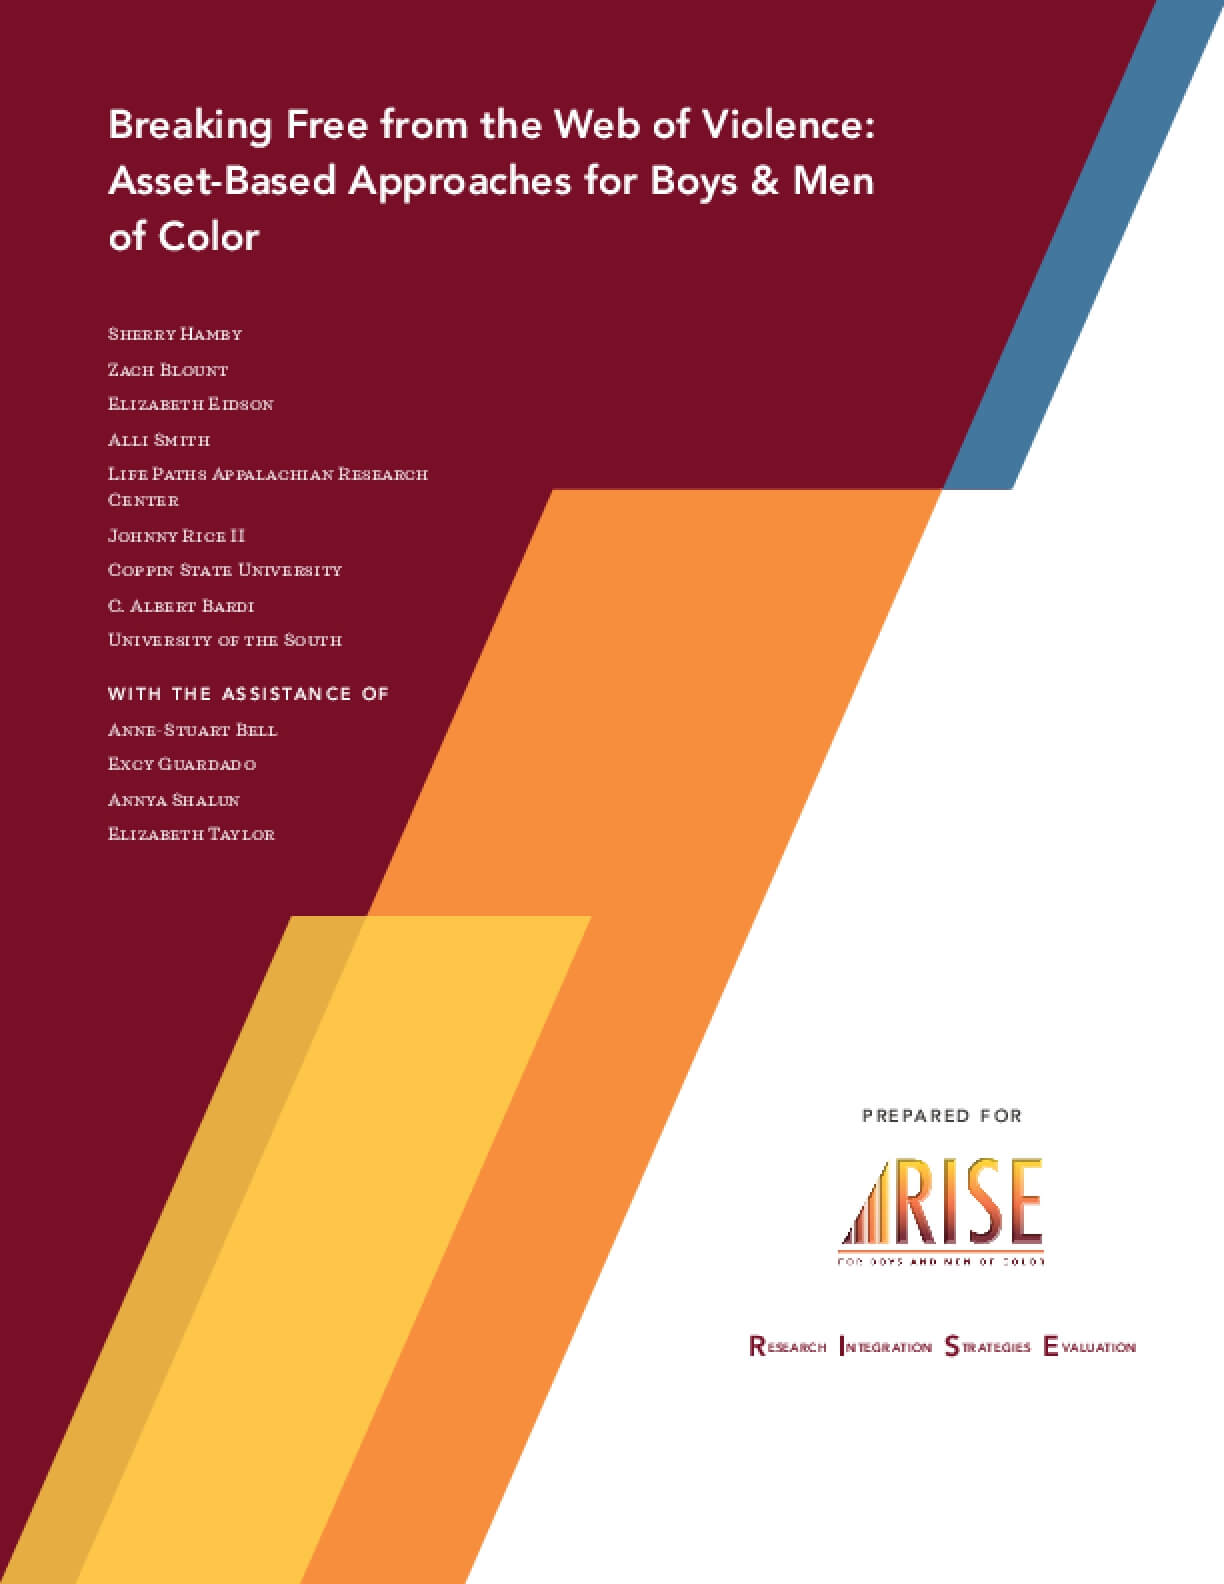 Breaking Free from the Web of Violence: Asset-Based Approaches for Boys & Men of Color